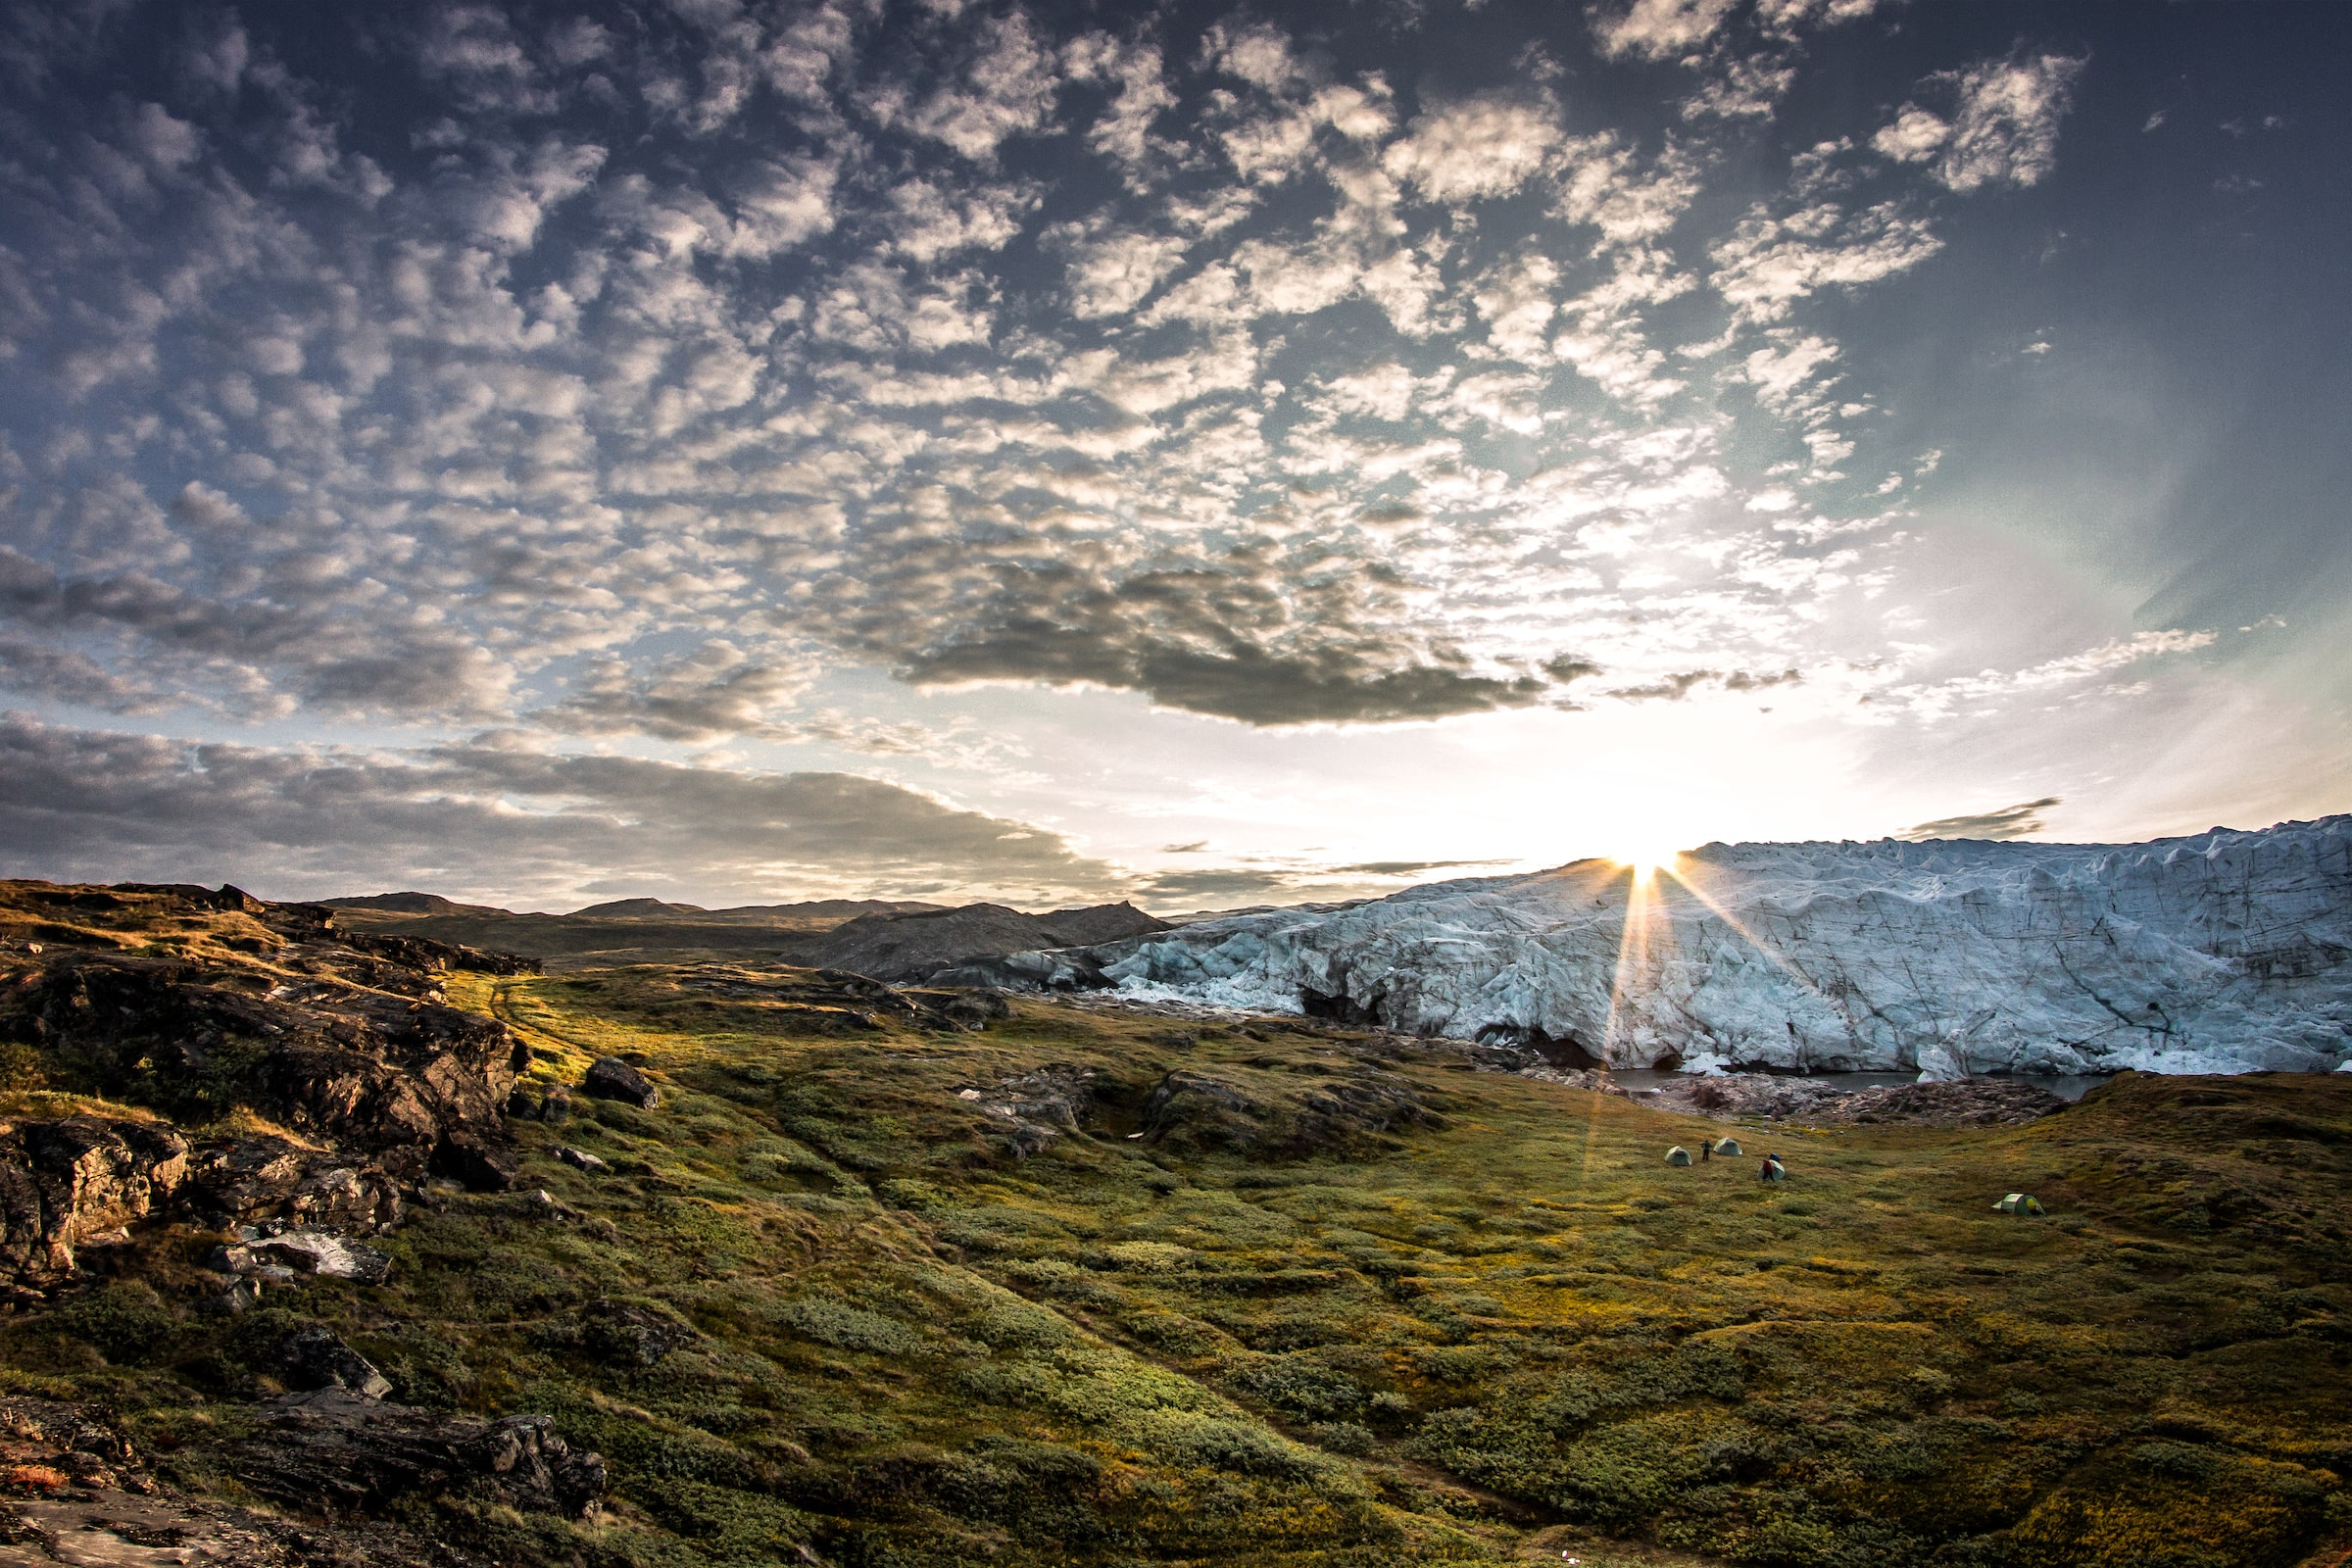 Sunrise over a tent camp by the Russell Glacier near Kangerlussuaq in Greenland. Photo by Mads Pihl - Visit Greenland